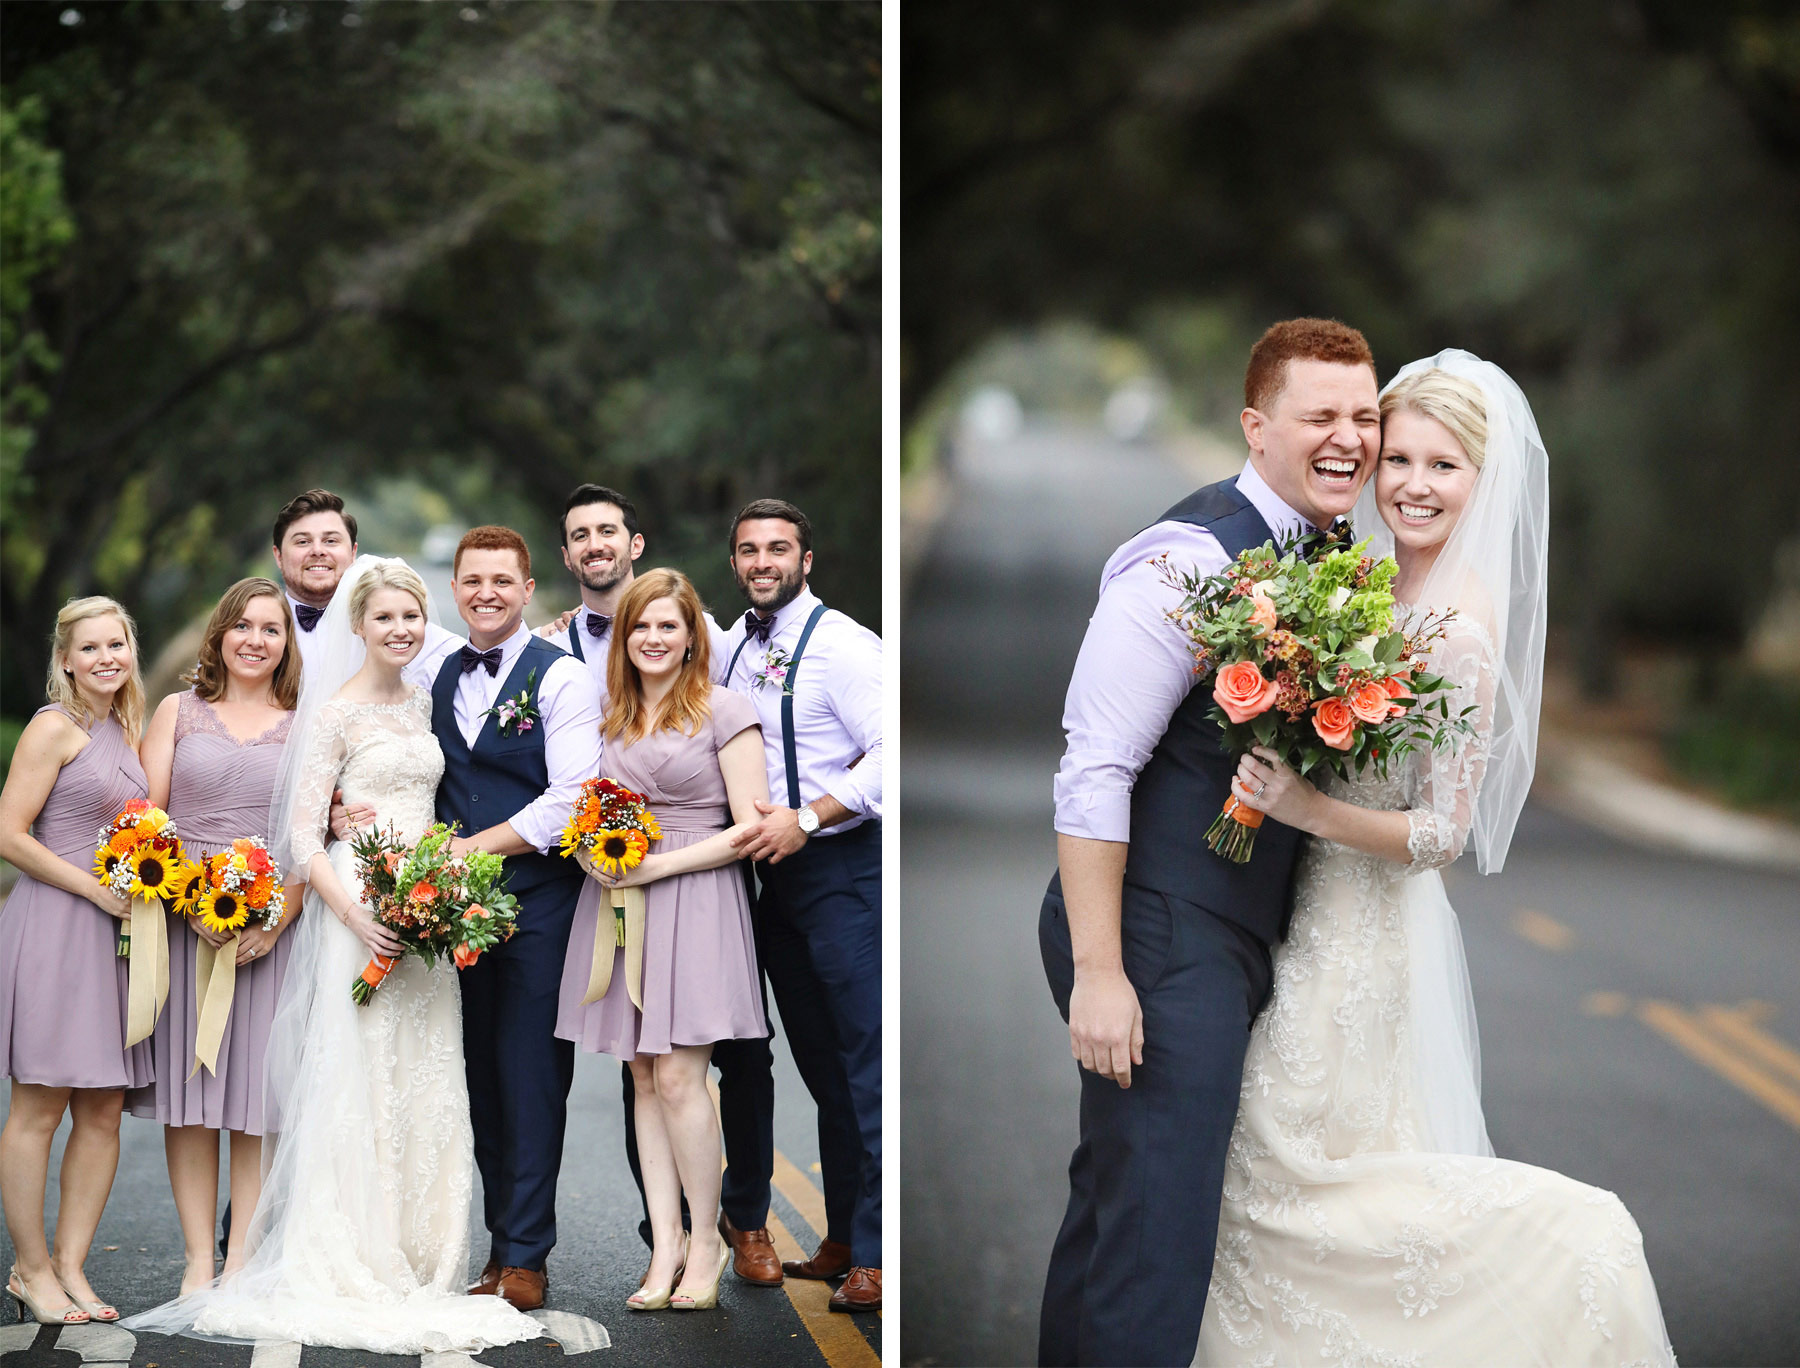 10-La-Canada-Flintridge-California-Wedding-Photographer-by-Andrew-Vick-Photography-Fall-Autumn-Destination-Bride-Groom-Bridal-Party-Bridesmaids-Groomsmen-Flowers-Fawn-and-Jay.jpg